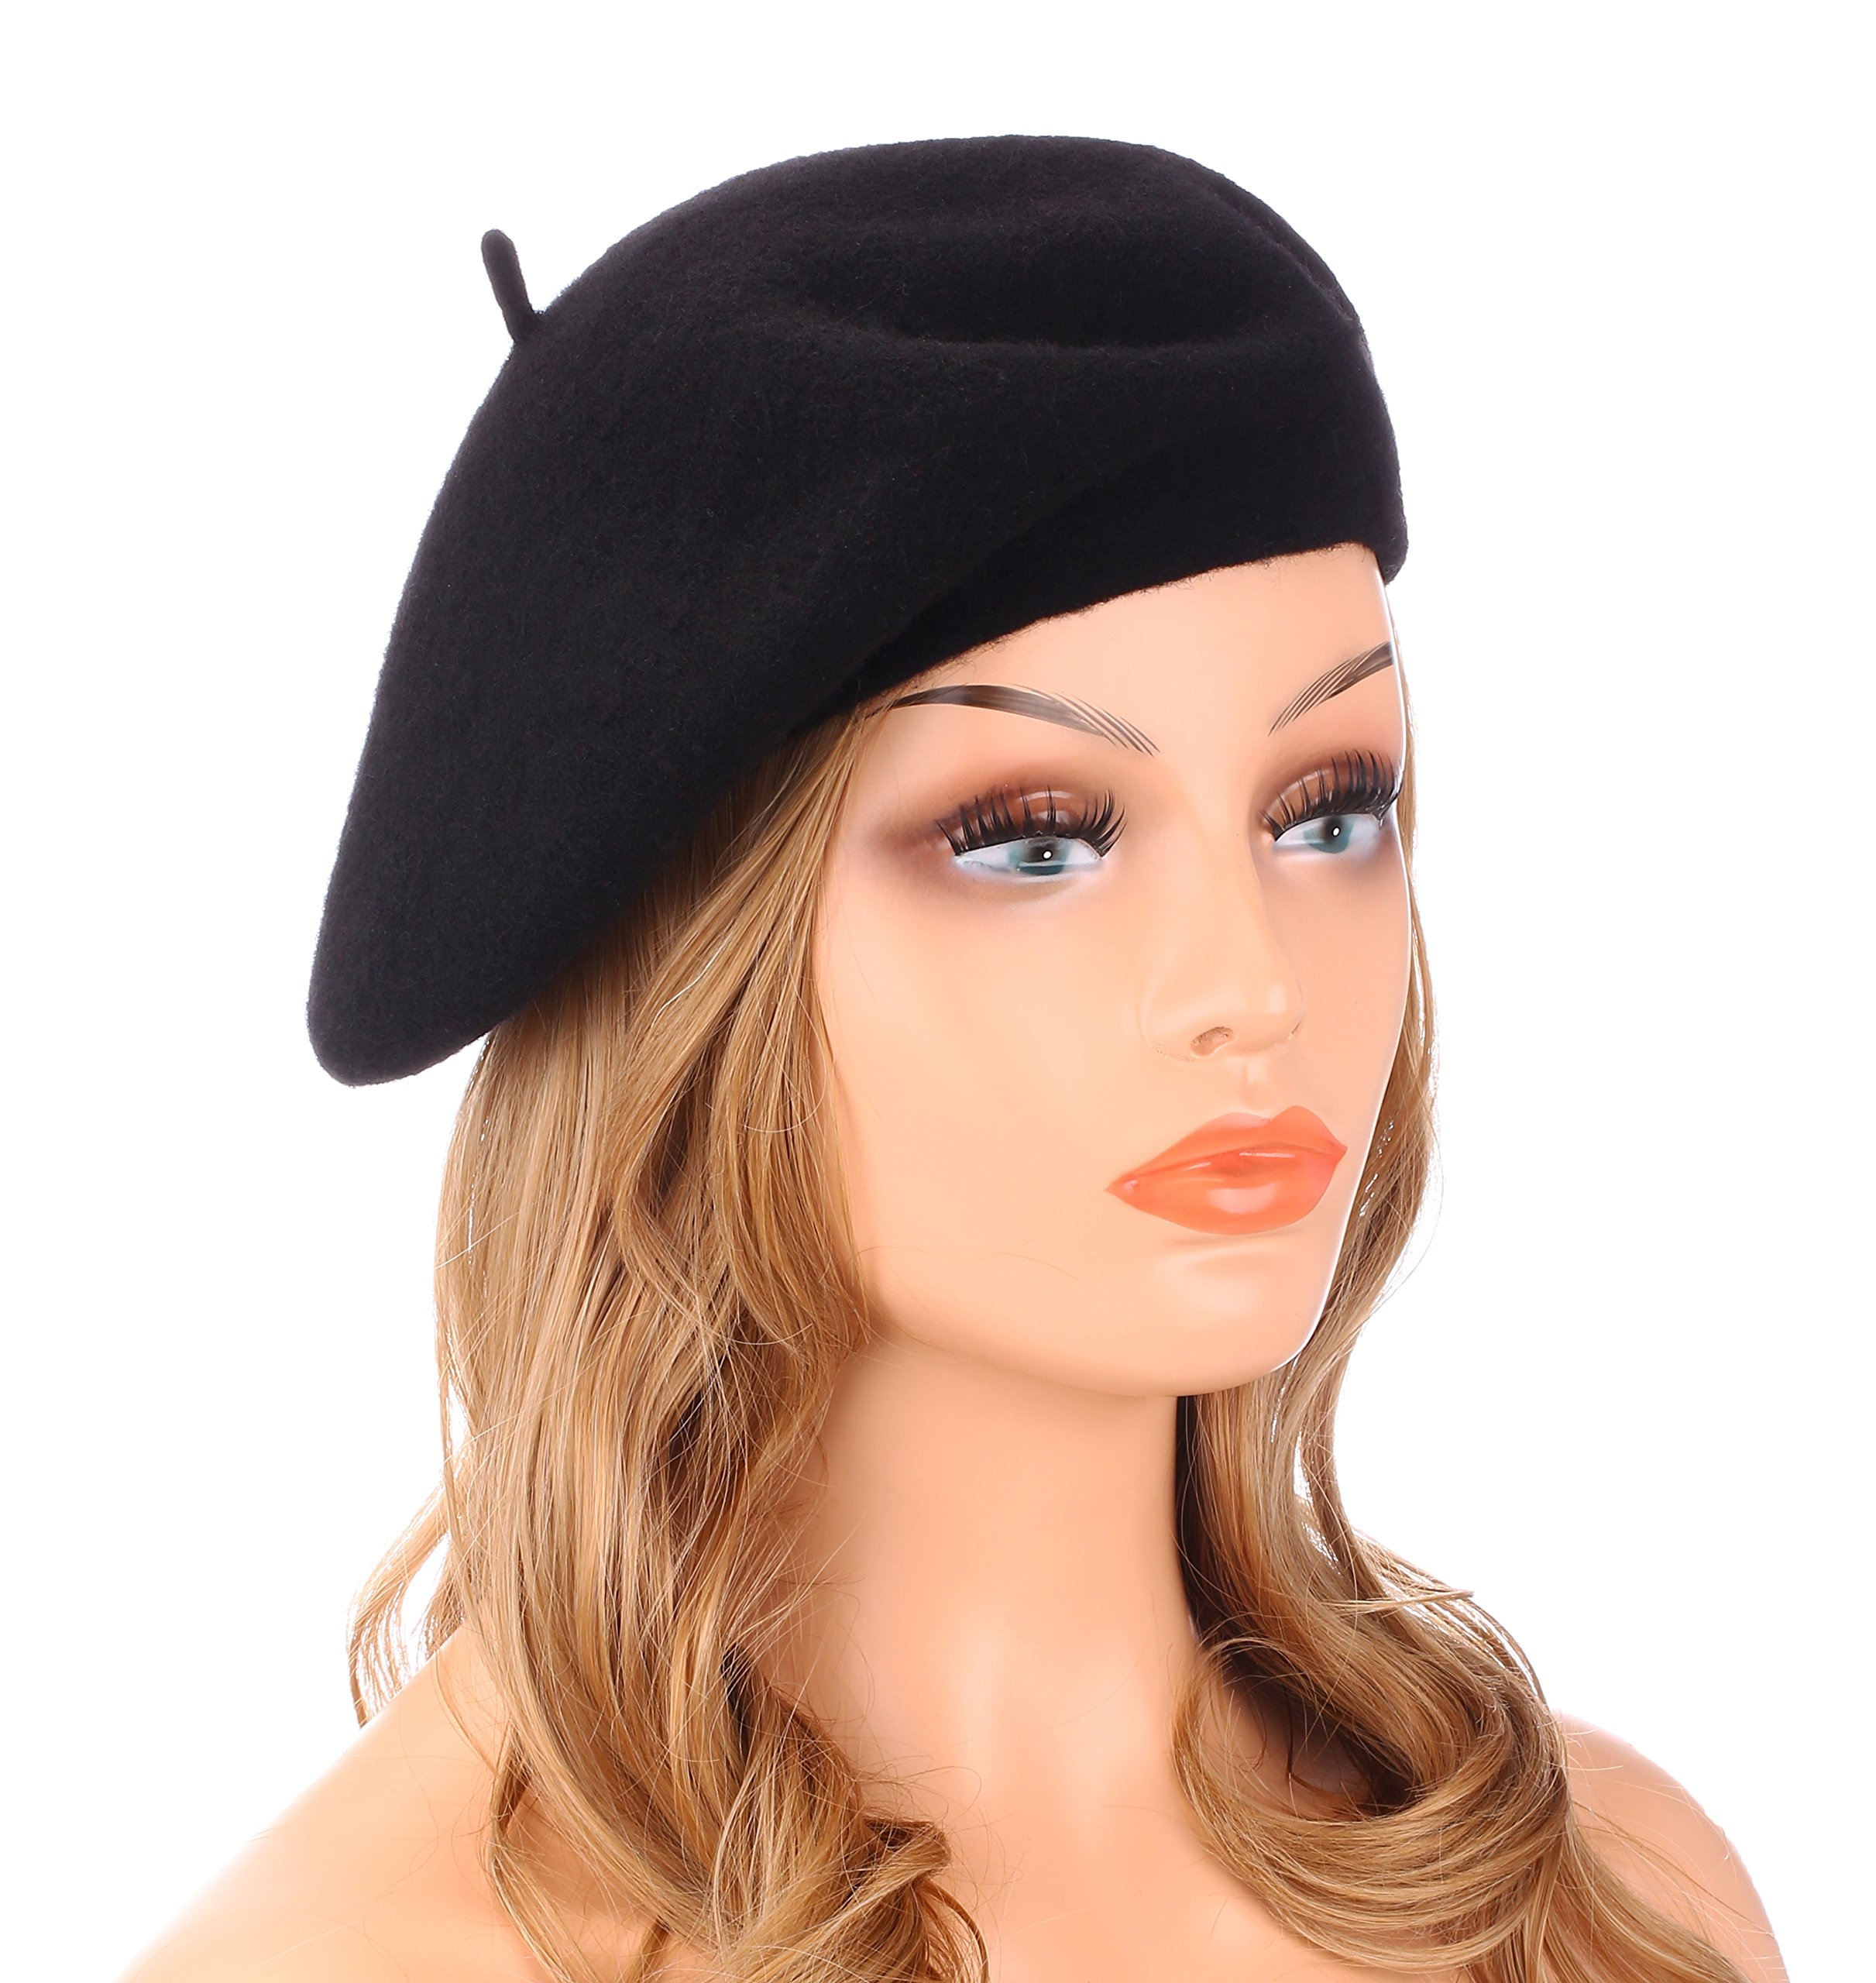 776f4b1008762 Best Rated in Women s Berets   Helpful Customer Reviews - Amazon.com